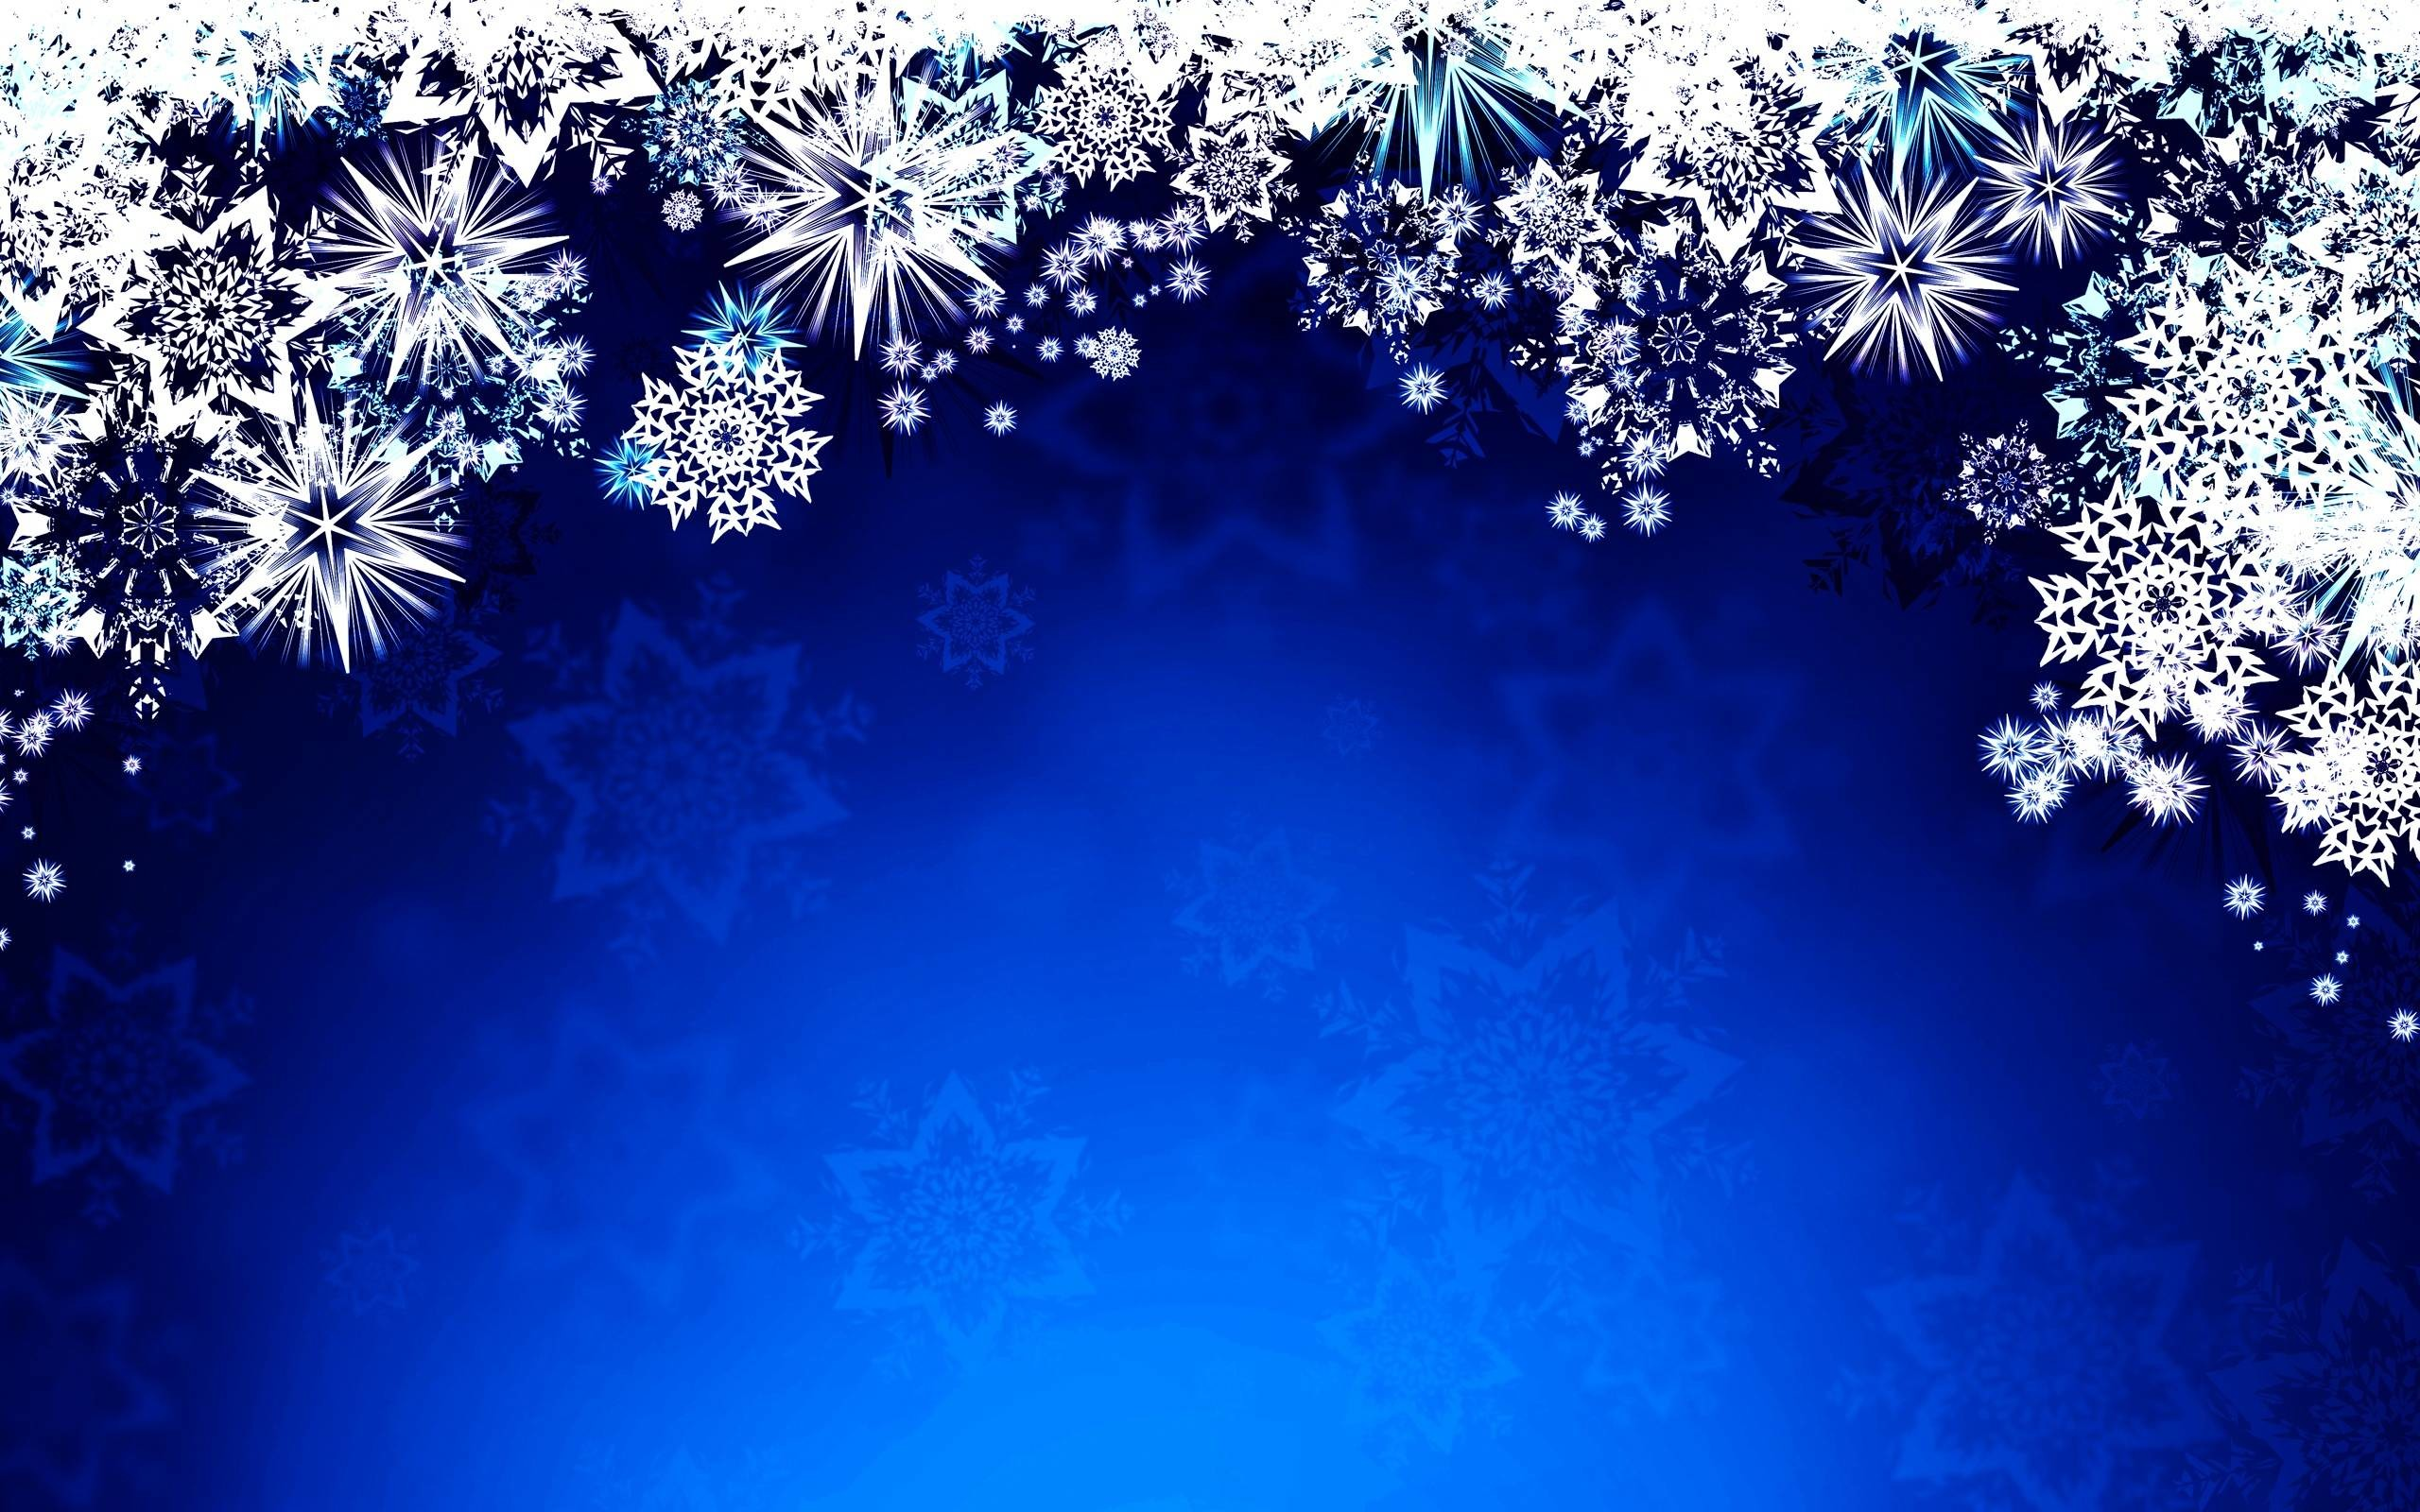 Snowflake desktop background 68 images 2560x1600 snowflakes wallpapers full hd wallpaper search voltagebd Choice Image